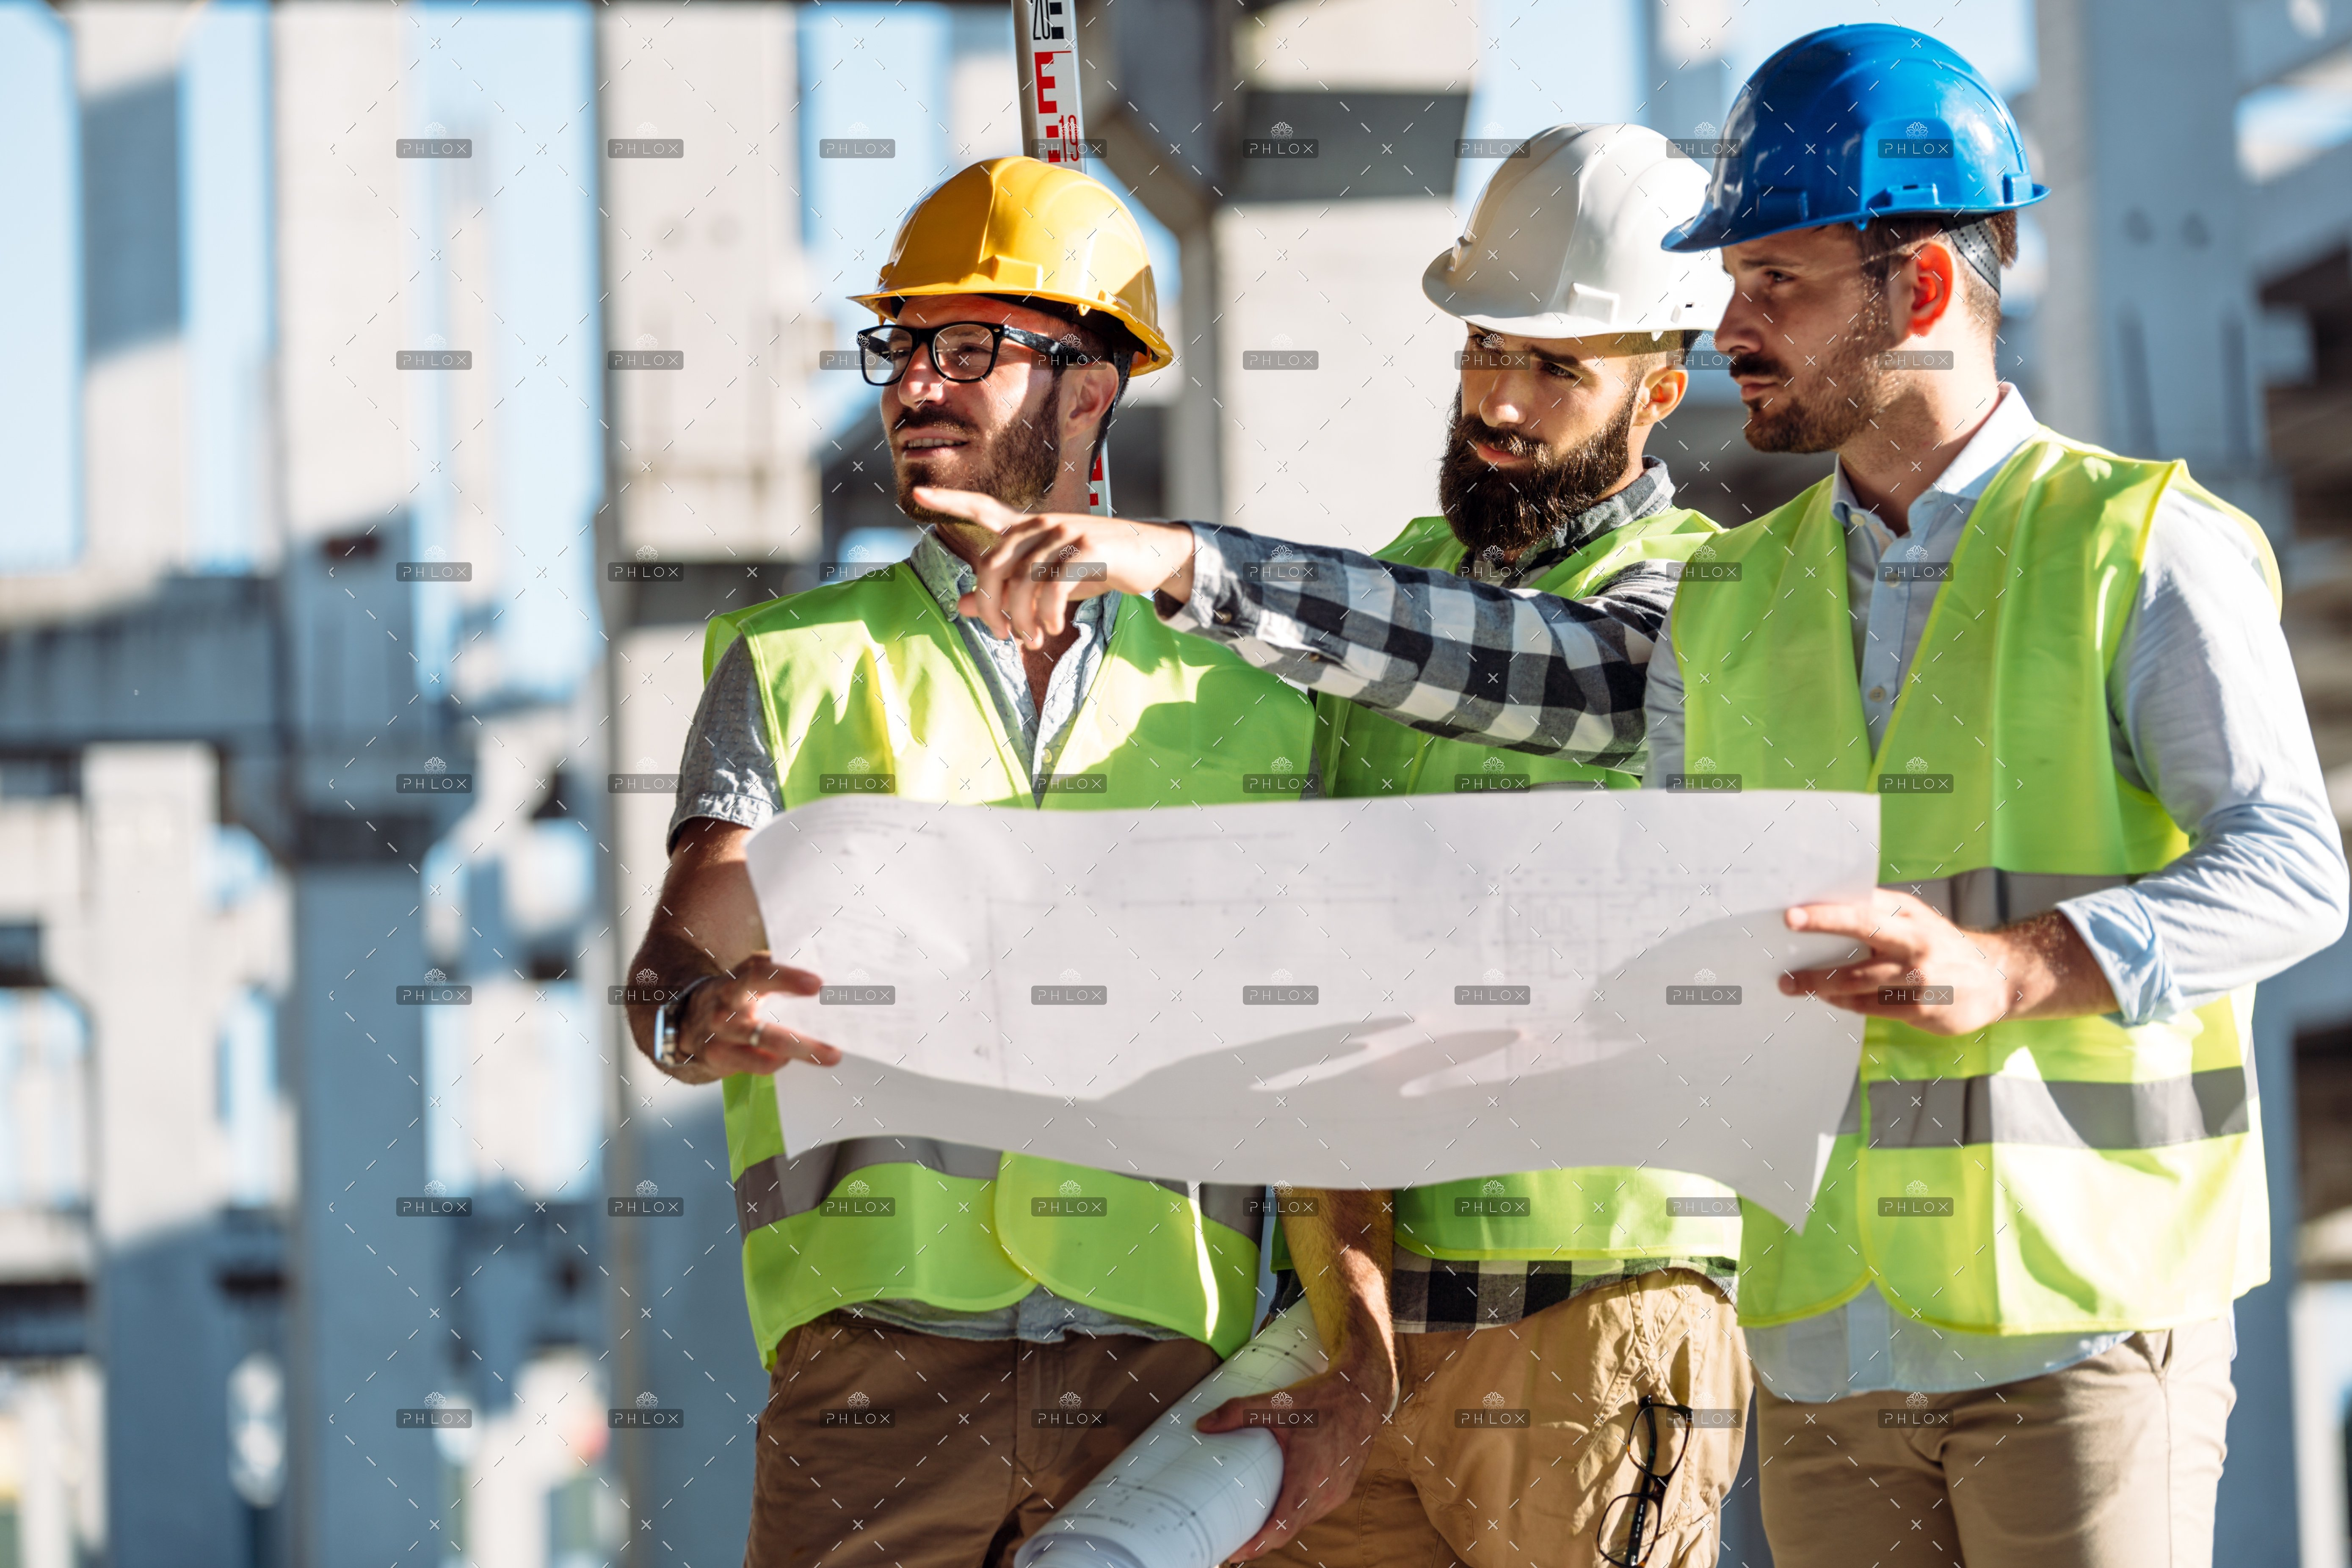 demo-attachment-780-portrait-of-construction-engineers-working-on-J9KU7NC